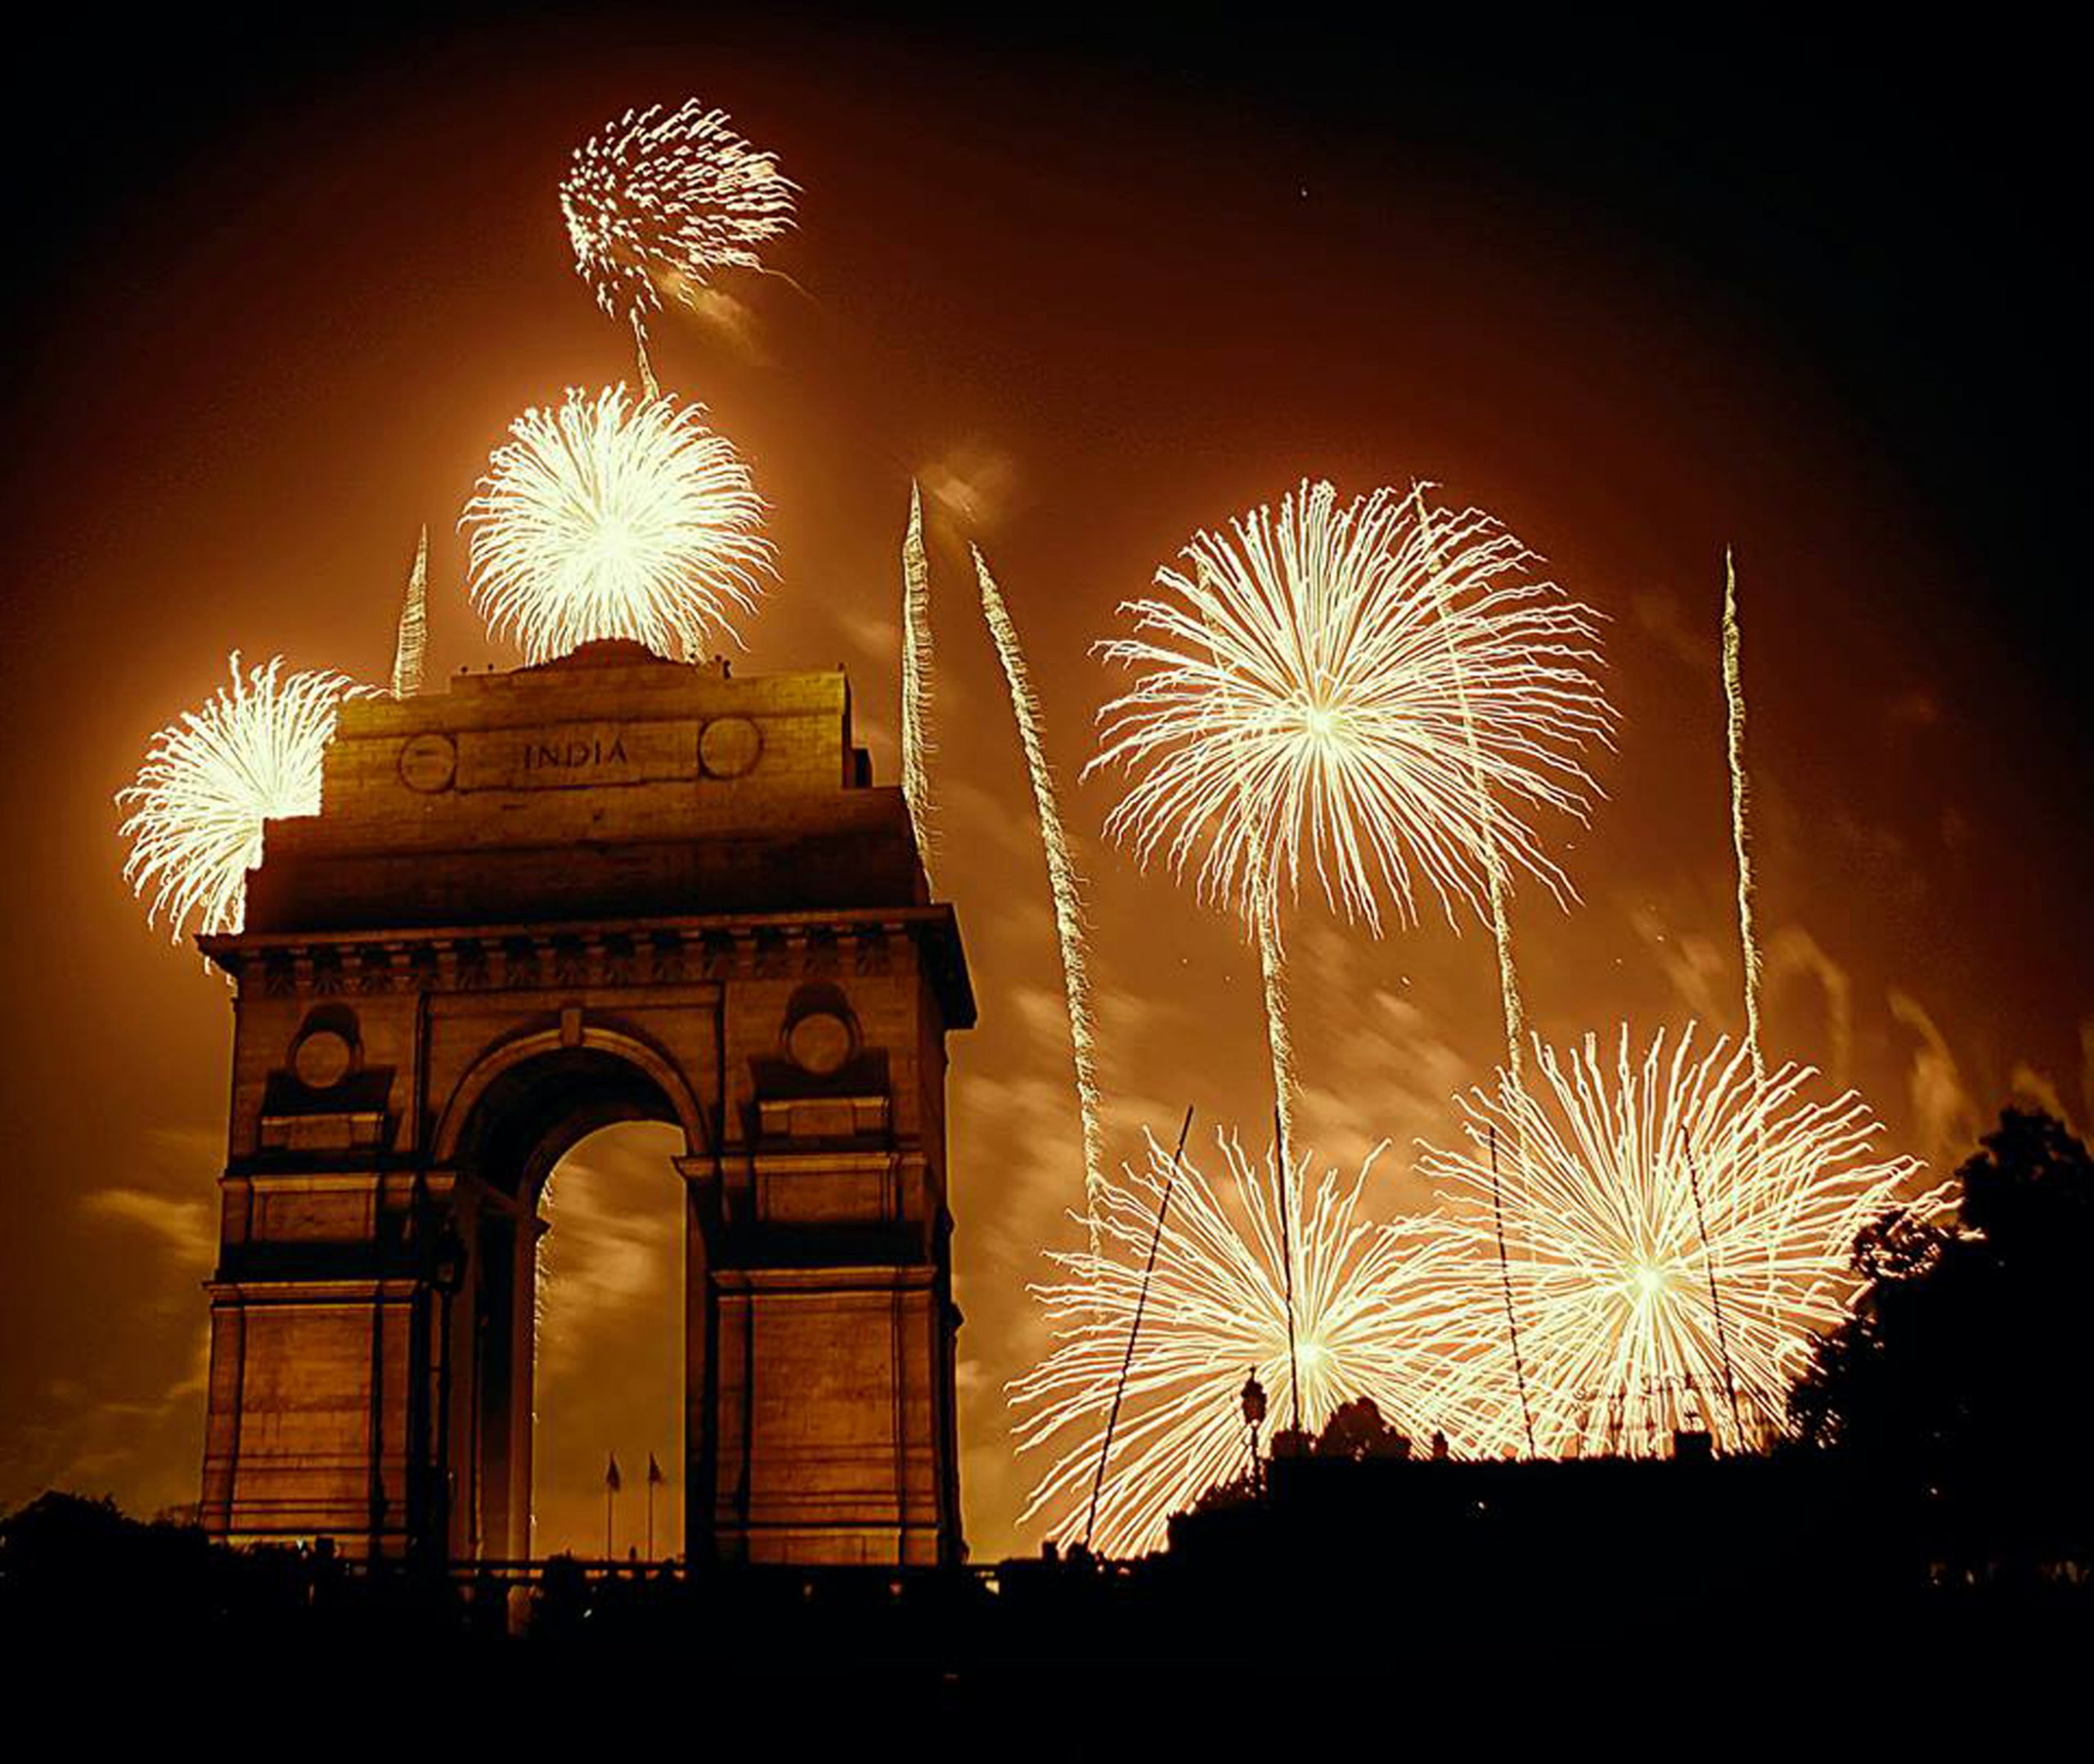 fireworks at india gate